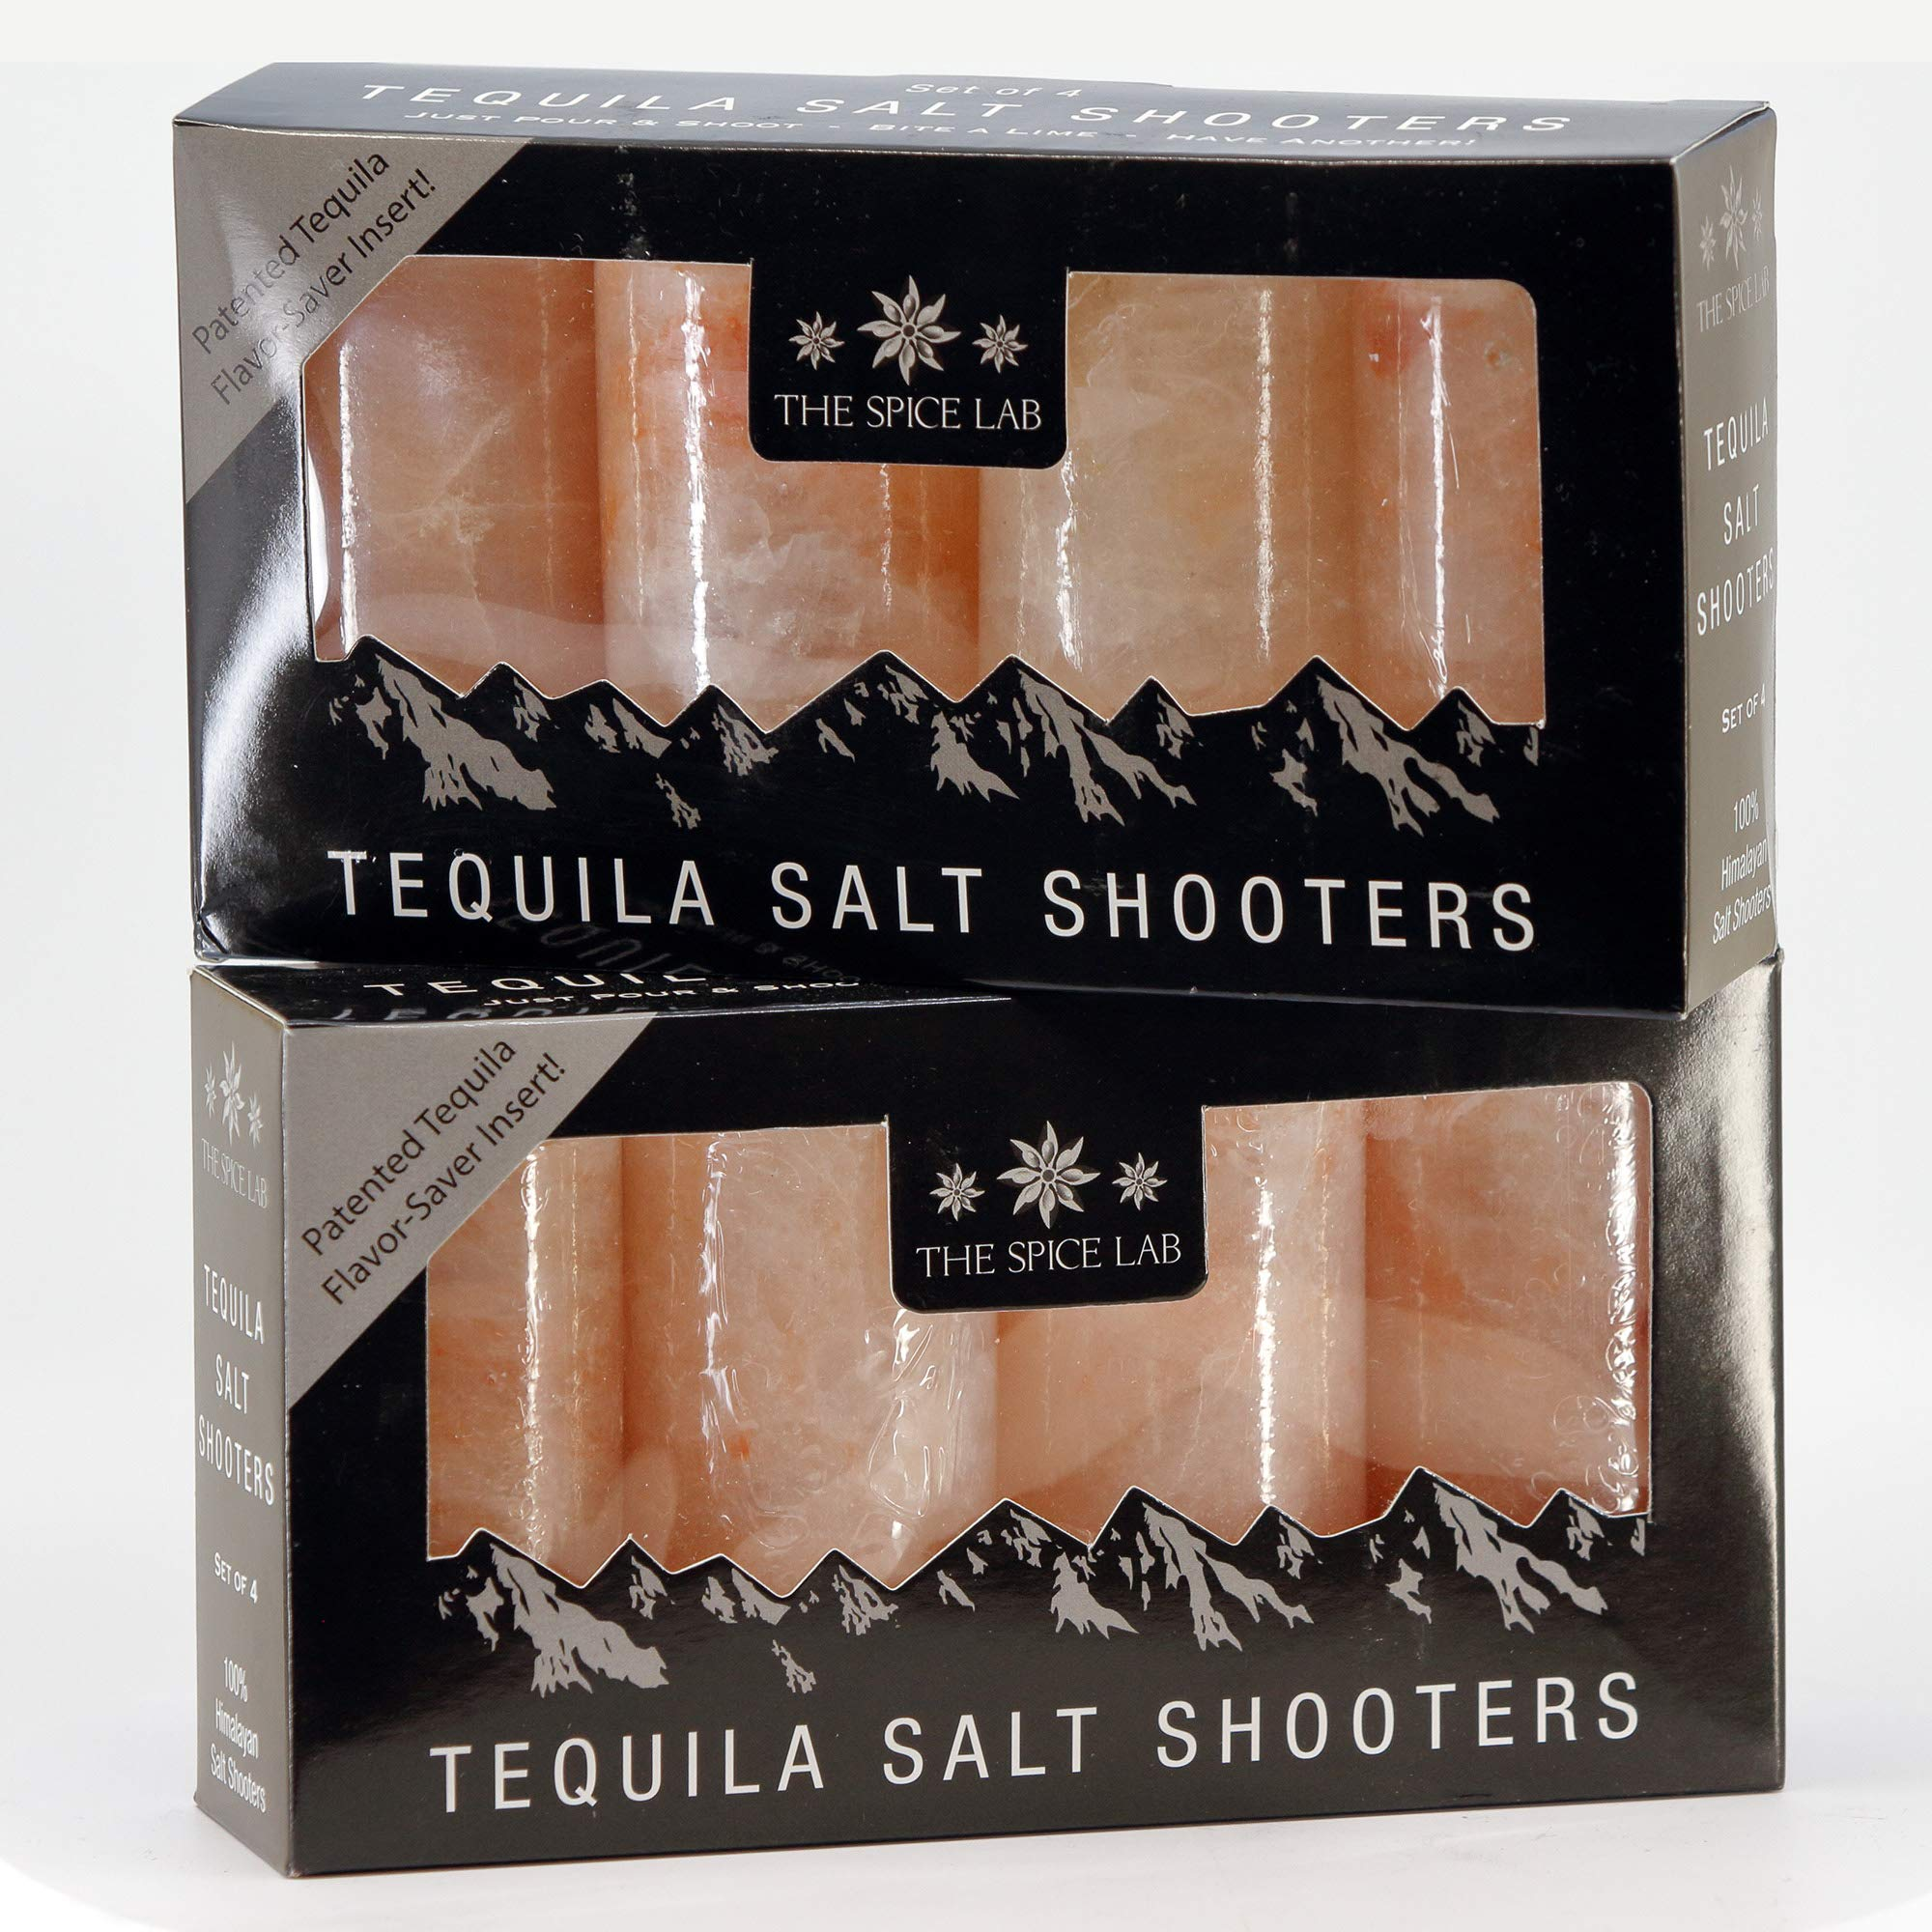 The Spice Lab Pink Himalayan Salt Tequila Shot Glasses - Just Pour, Shoot and Bite a Lime - Authentic Patented - Naturally Anti-Bacterial - The Perfect Tequila Shot Glass for your Bar- 8 Pack